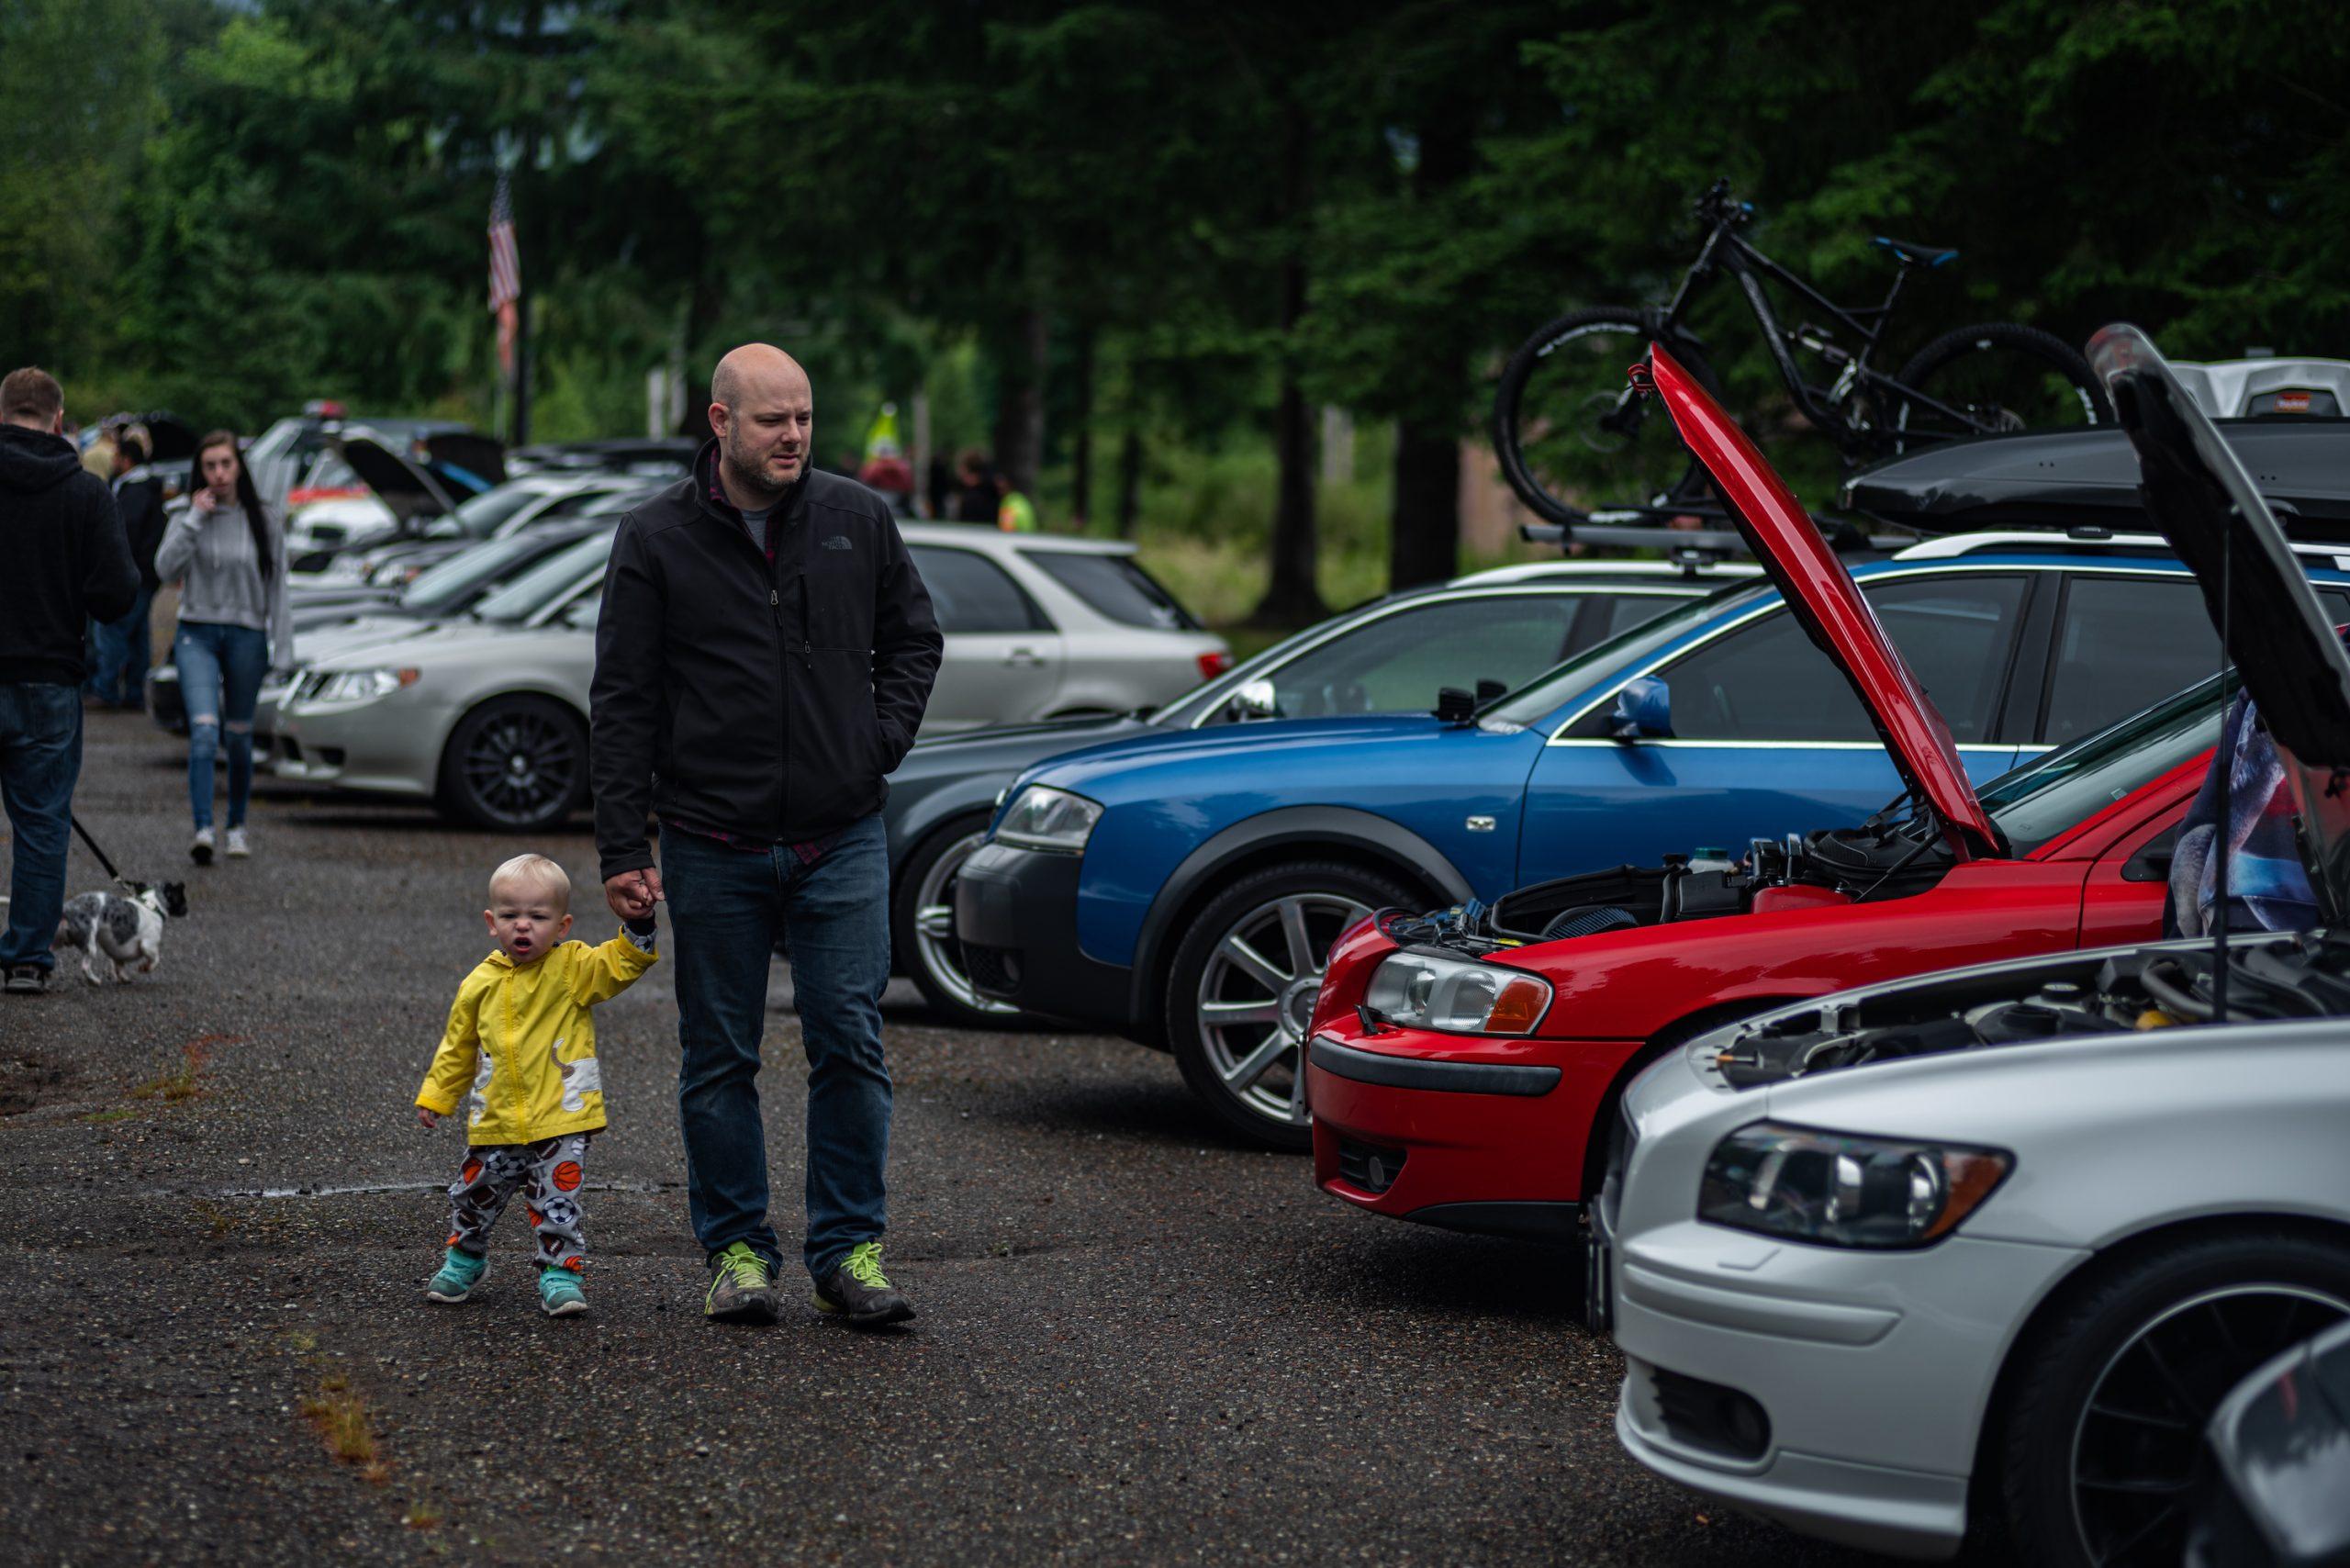 Man and Child Walking By Volvo Wagons